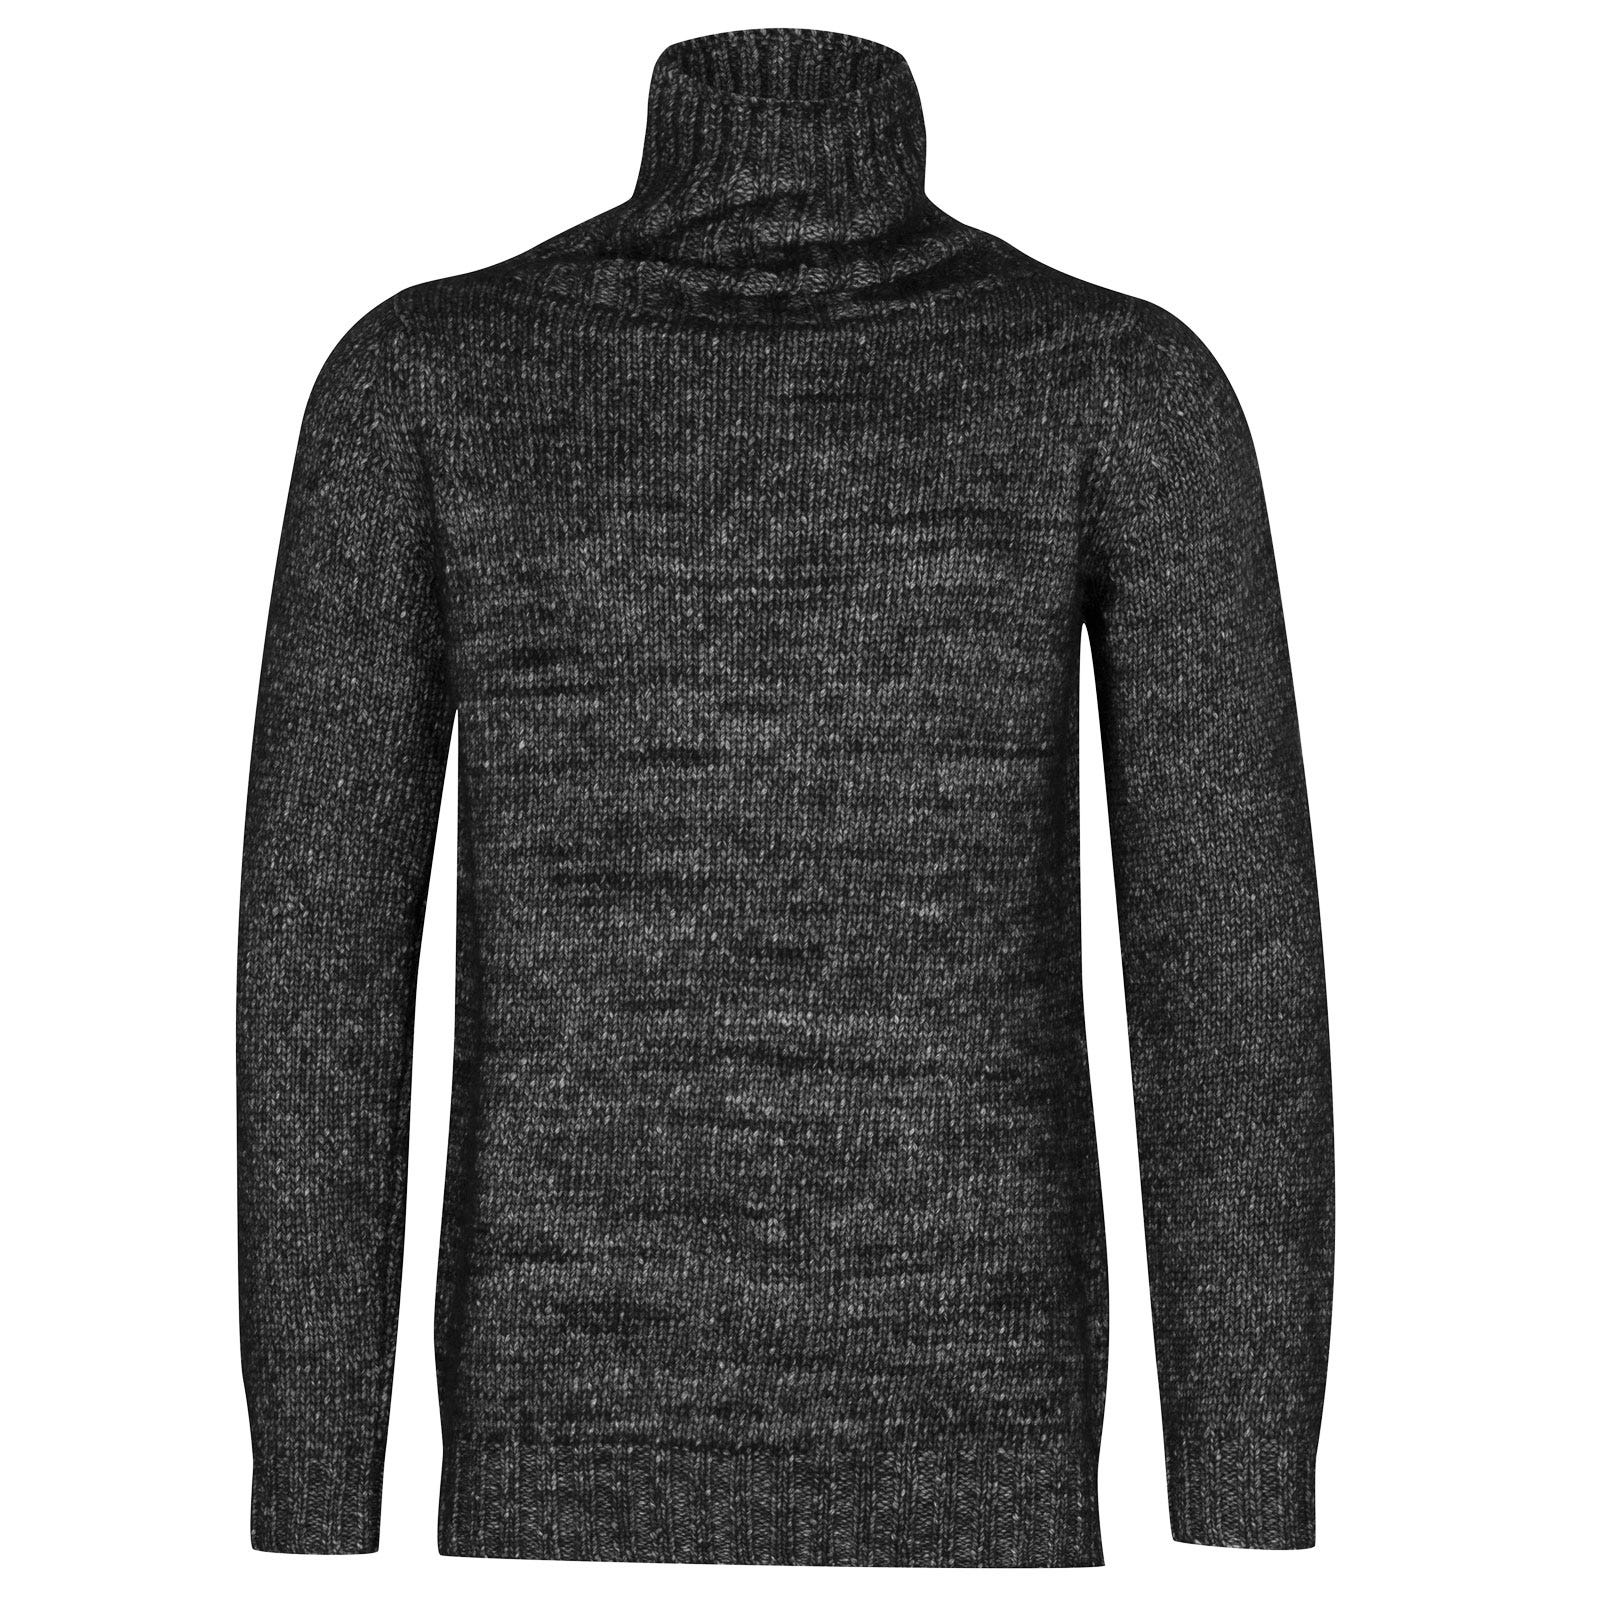 John Smedley kilbreck Alpaca, Wool & Cotton Pullover in Black-XL